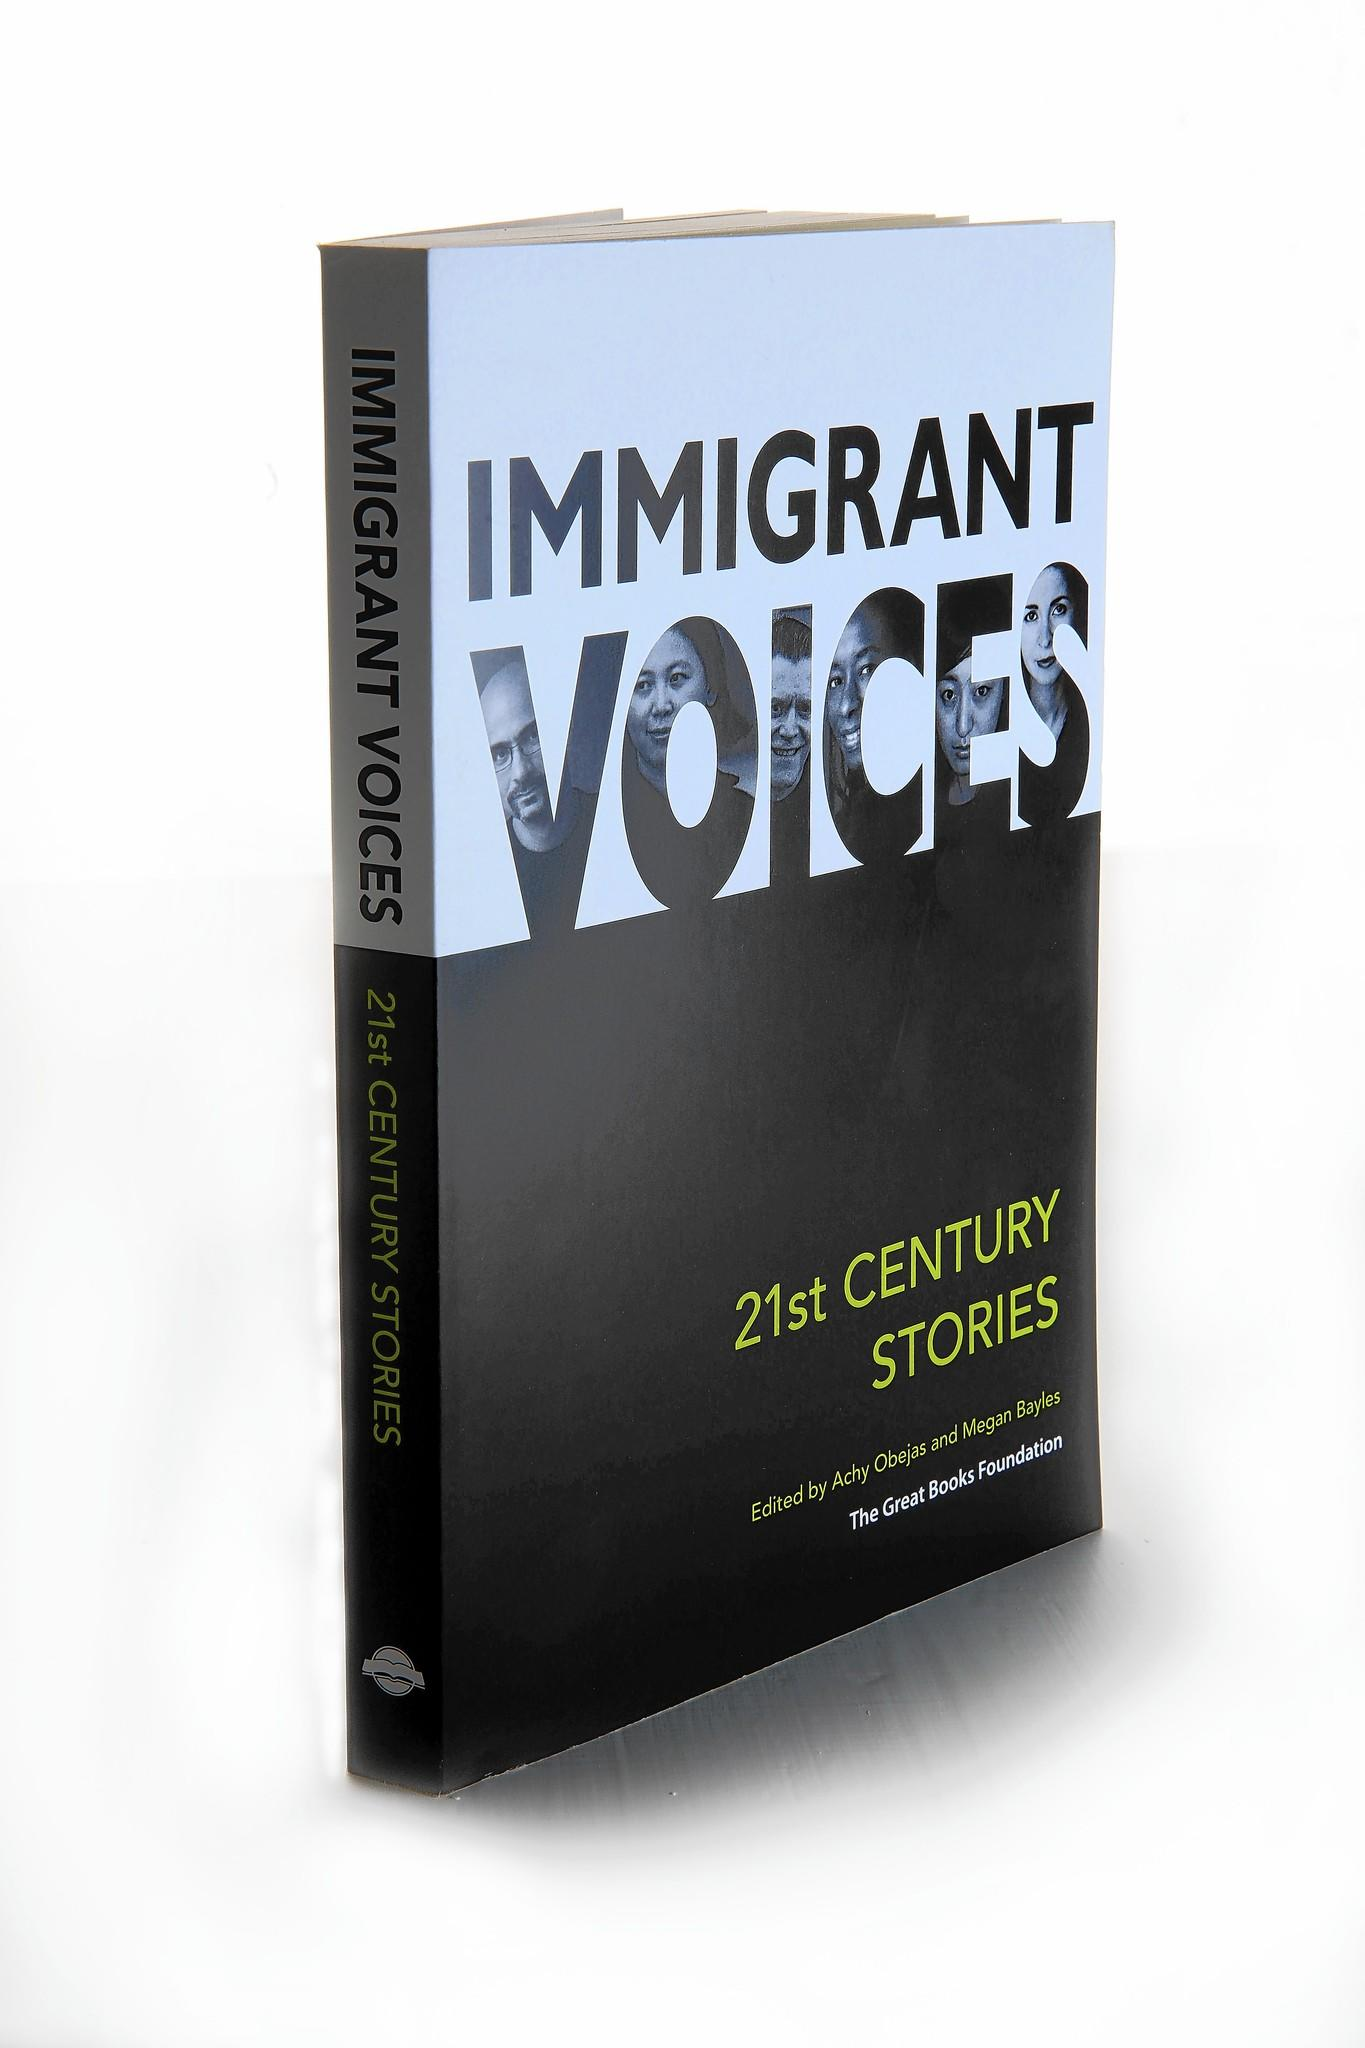 """In """"Immigrant Voices,"""" Achy Obejas and Megan Bayles highlight 18 stories about the immigrant experience in the United States."""